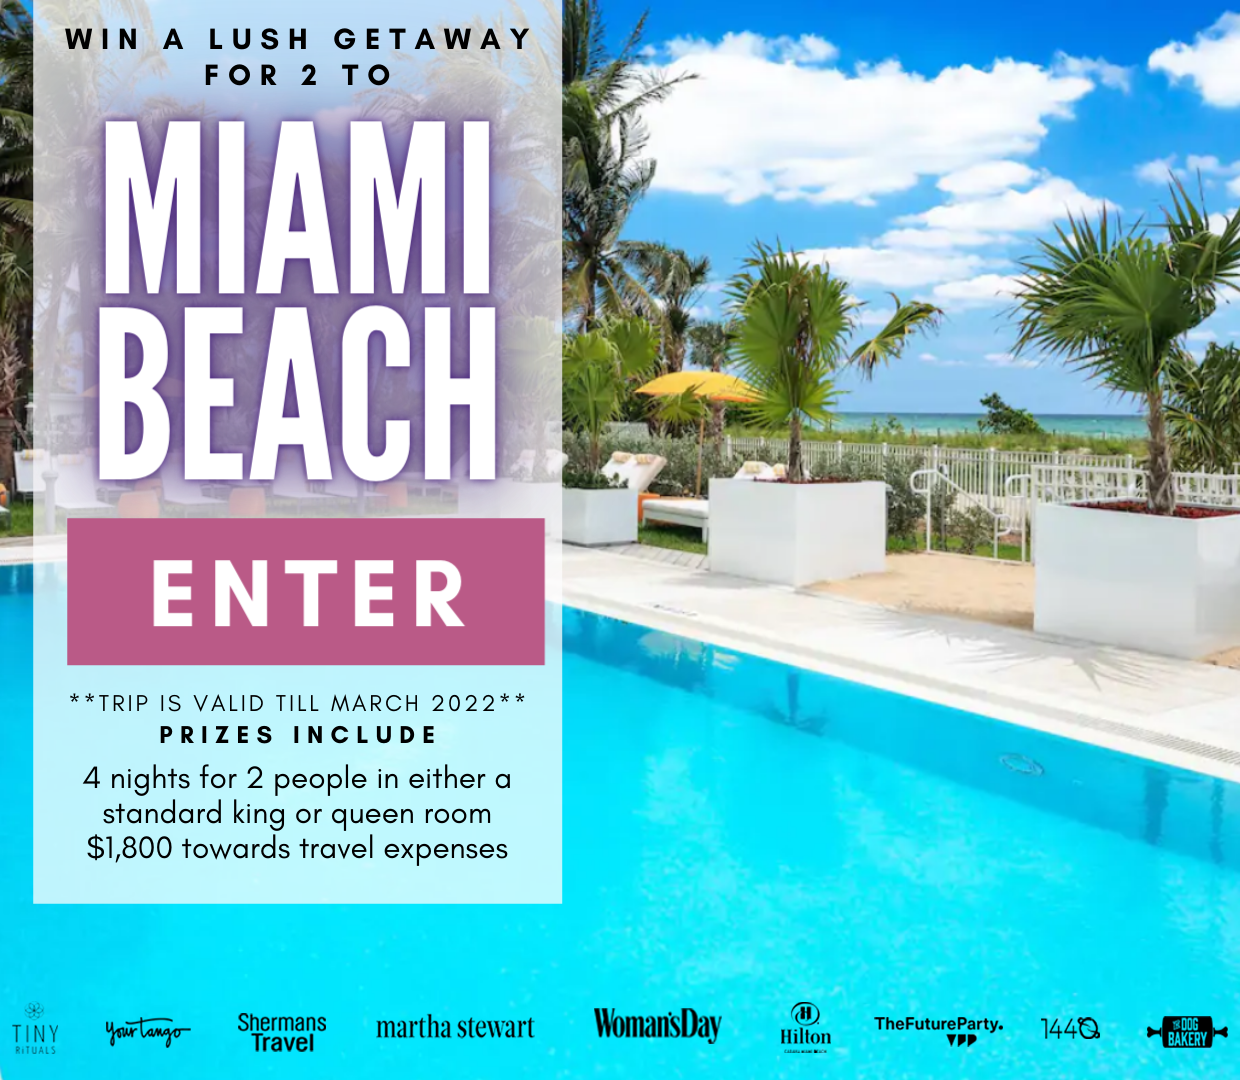 Enter for a chance to win: Four (4) nights for two (2) people in either a standard king or queen room, and $1,800 towards travel expenses.